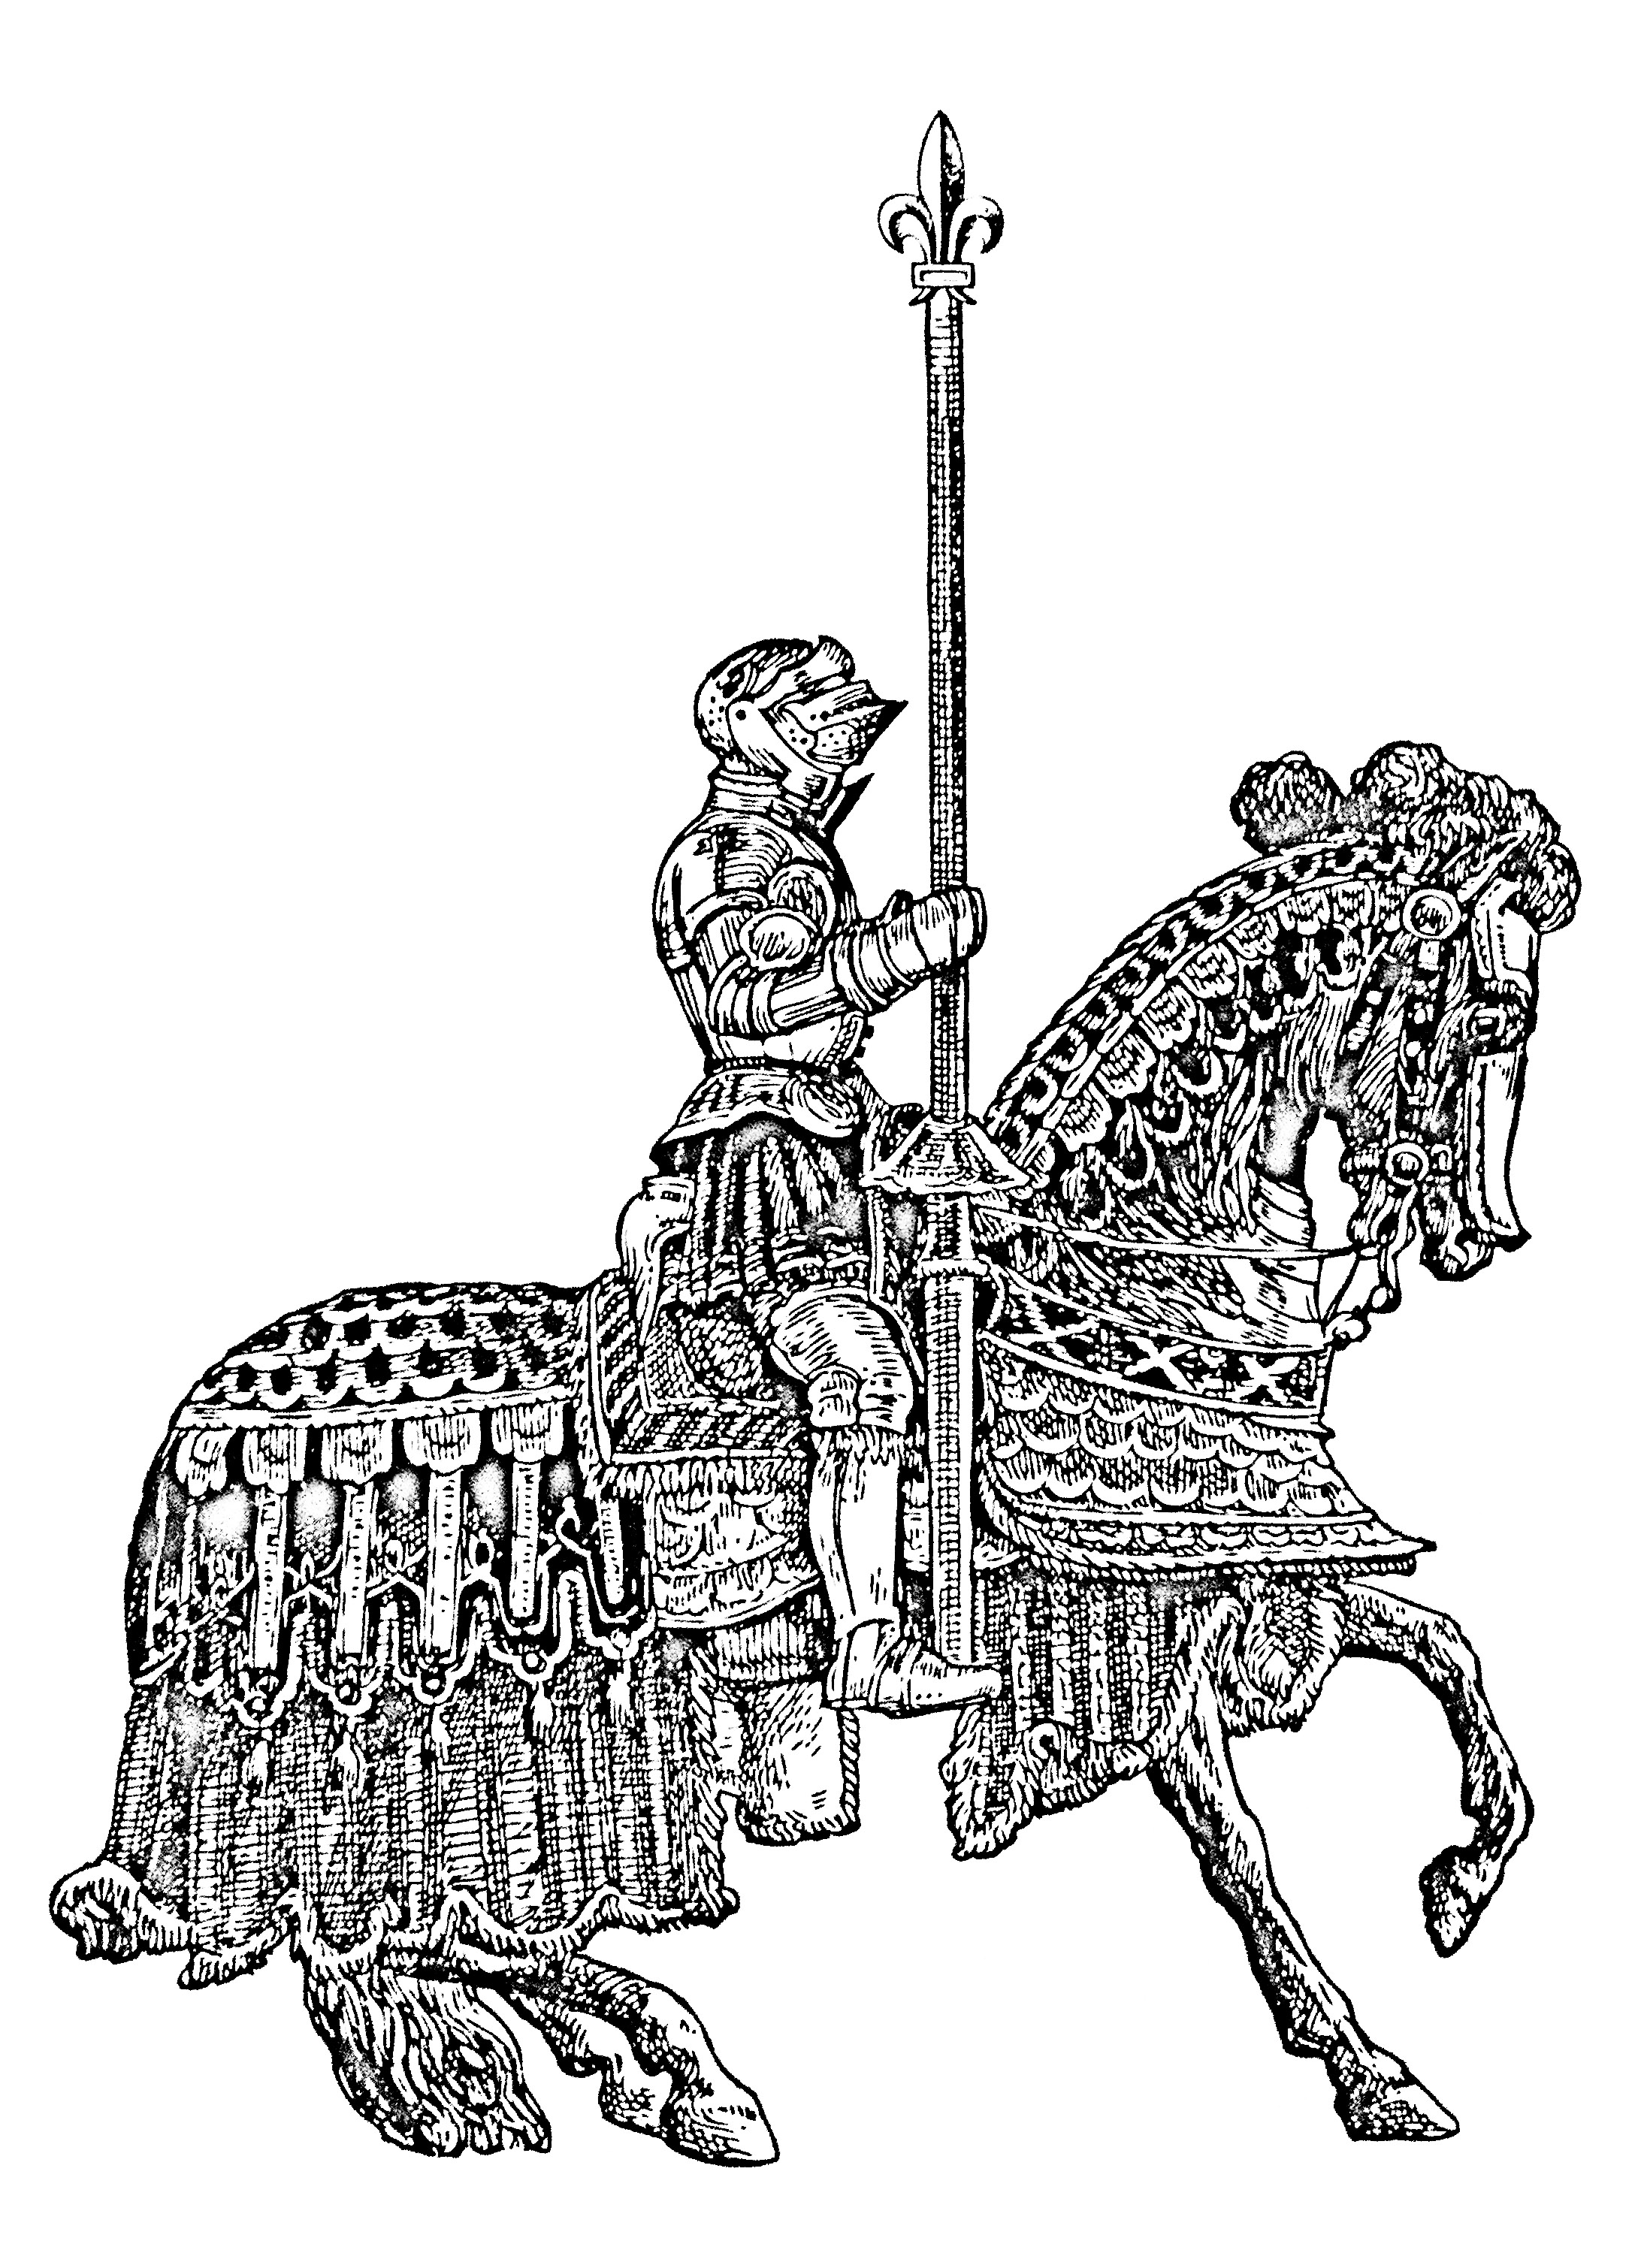 Coloring pictures for adults - Coloring Adult Knight Middle Age On Horse Free To Print